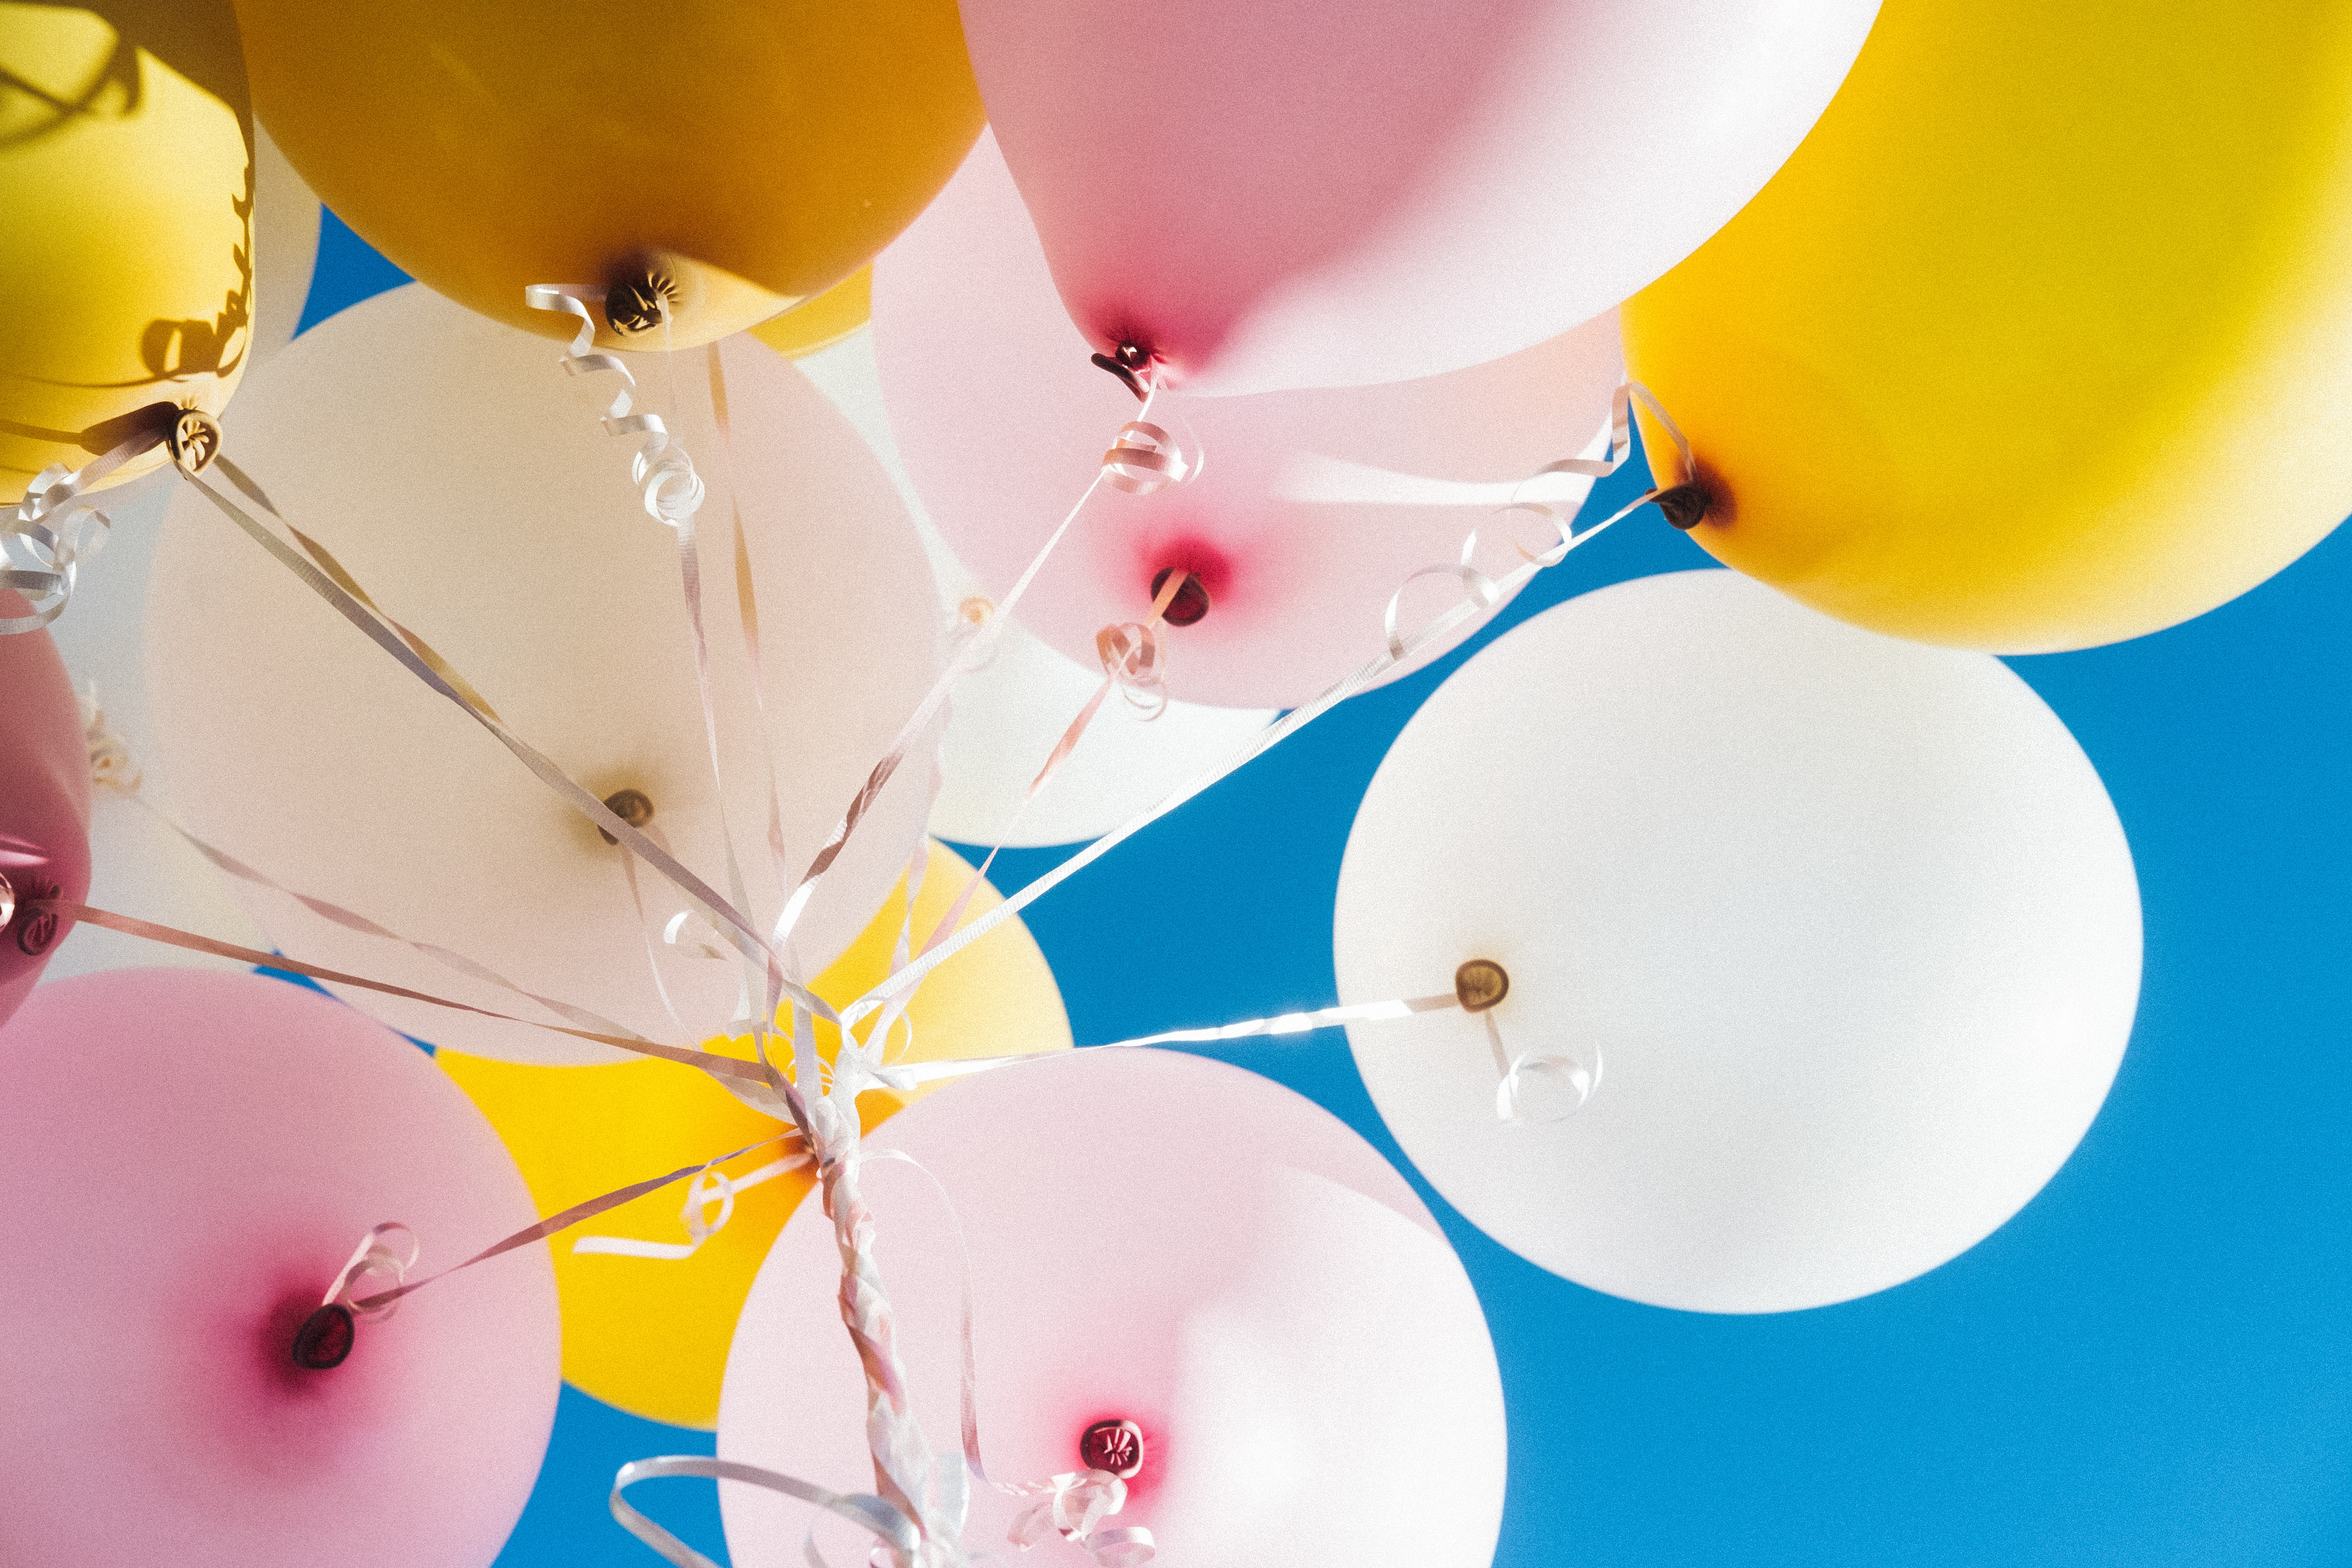 128151 Screensavers and Wallpapers Balloons for phone. Download Sky, Balloons, Miscellanea, Miscellaneous, Multicolored, Motley, Flight, Air Balloons pictures for free